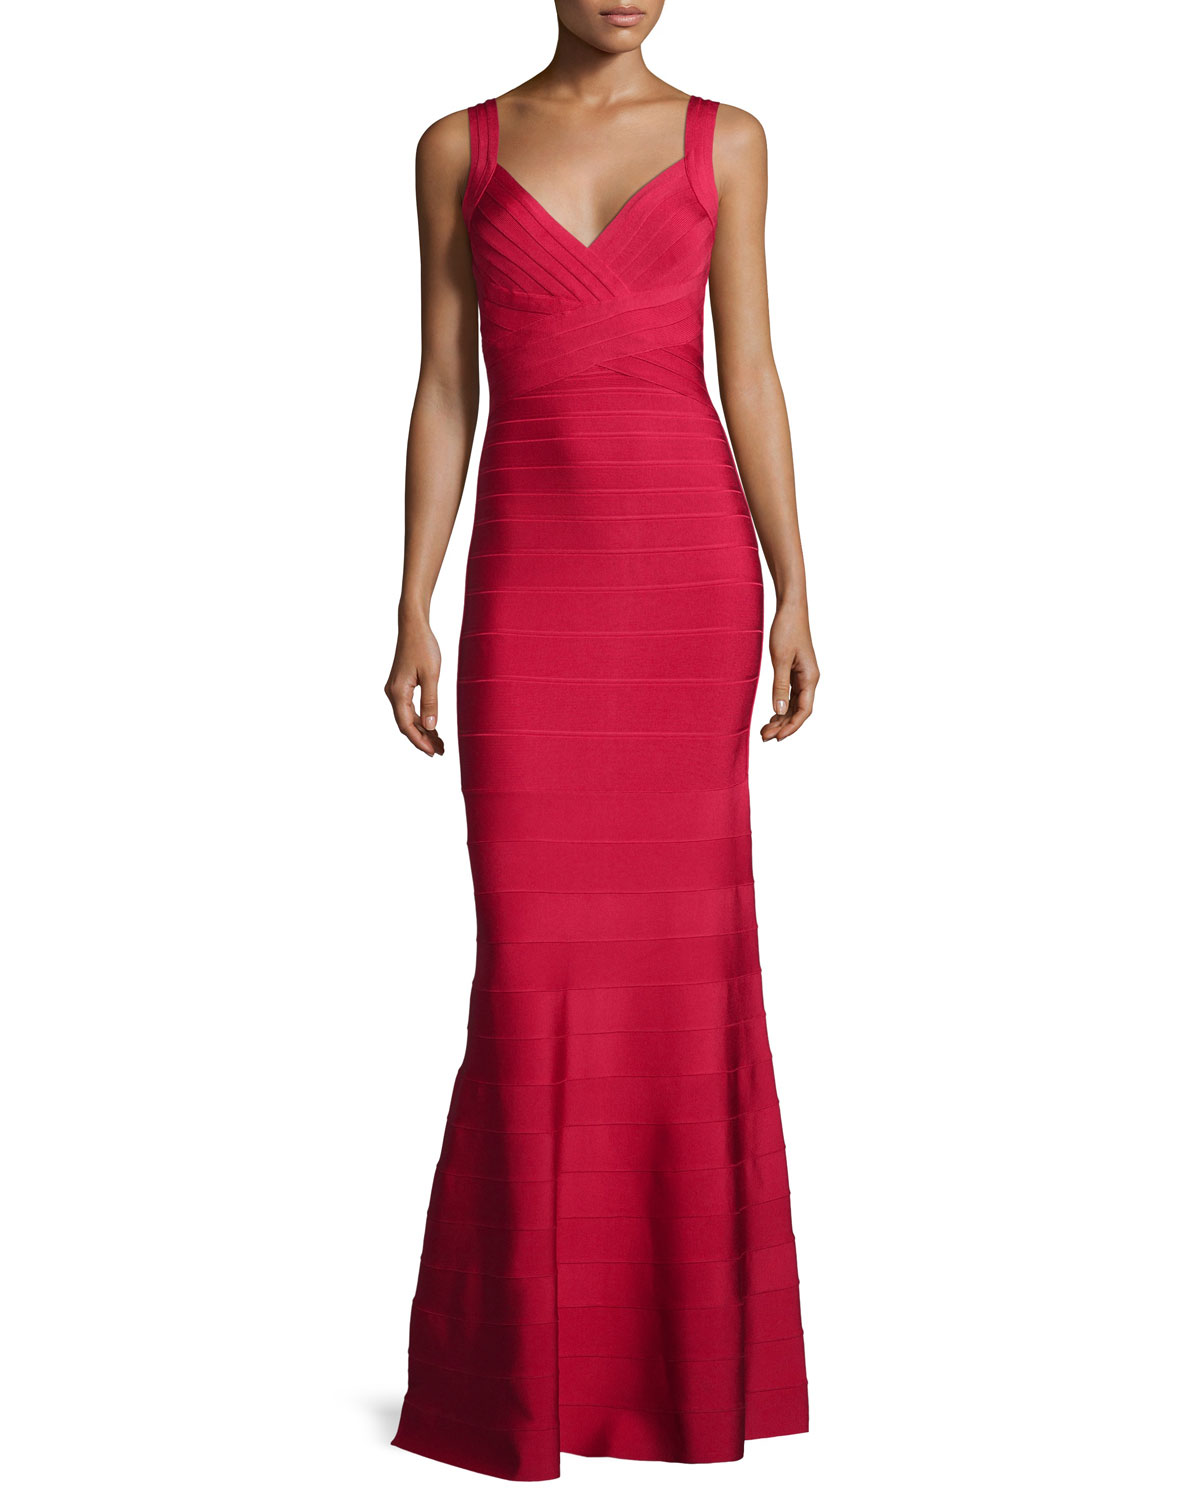 Herve Leger Deep V-Neck Bandage Gown, Red | Neiman Marcus